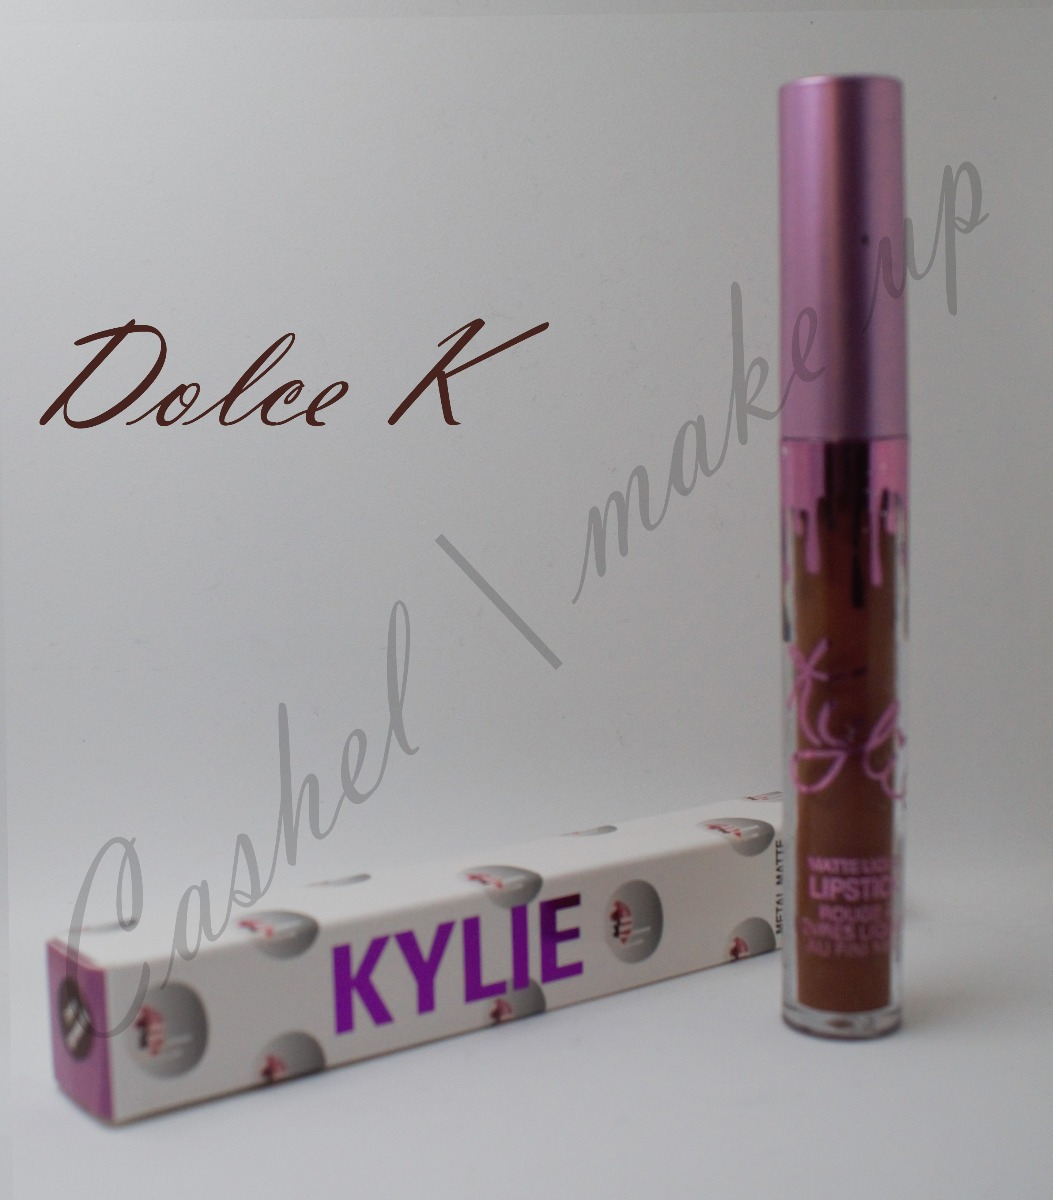 ffb06ab77ab Labial Kylie Cosmetics Limited Edition Whit Every Purchase - $ 100 ...